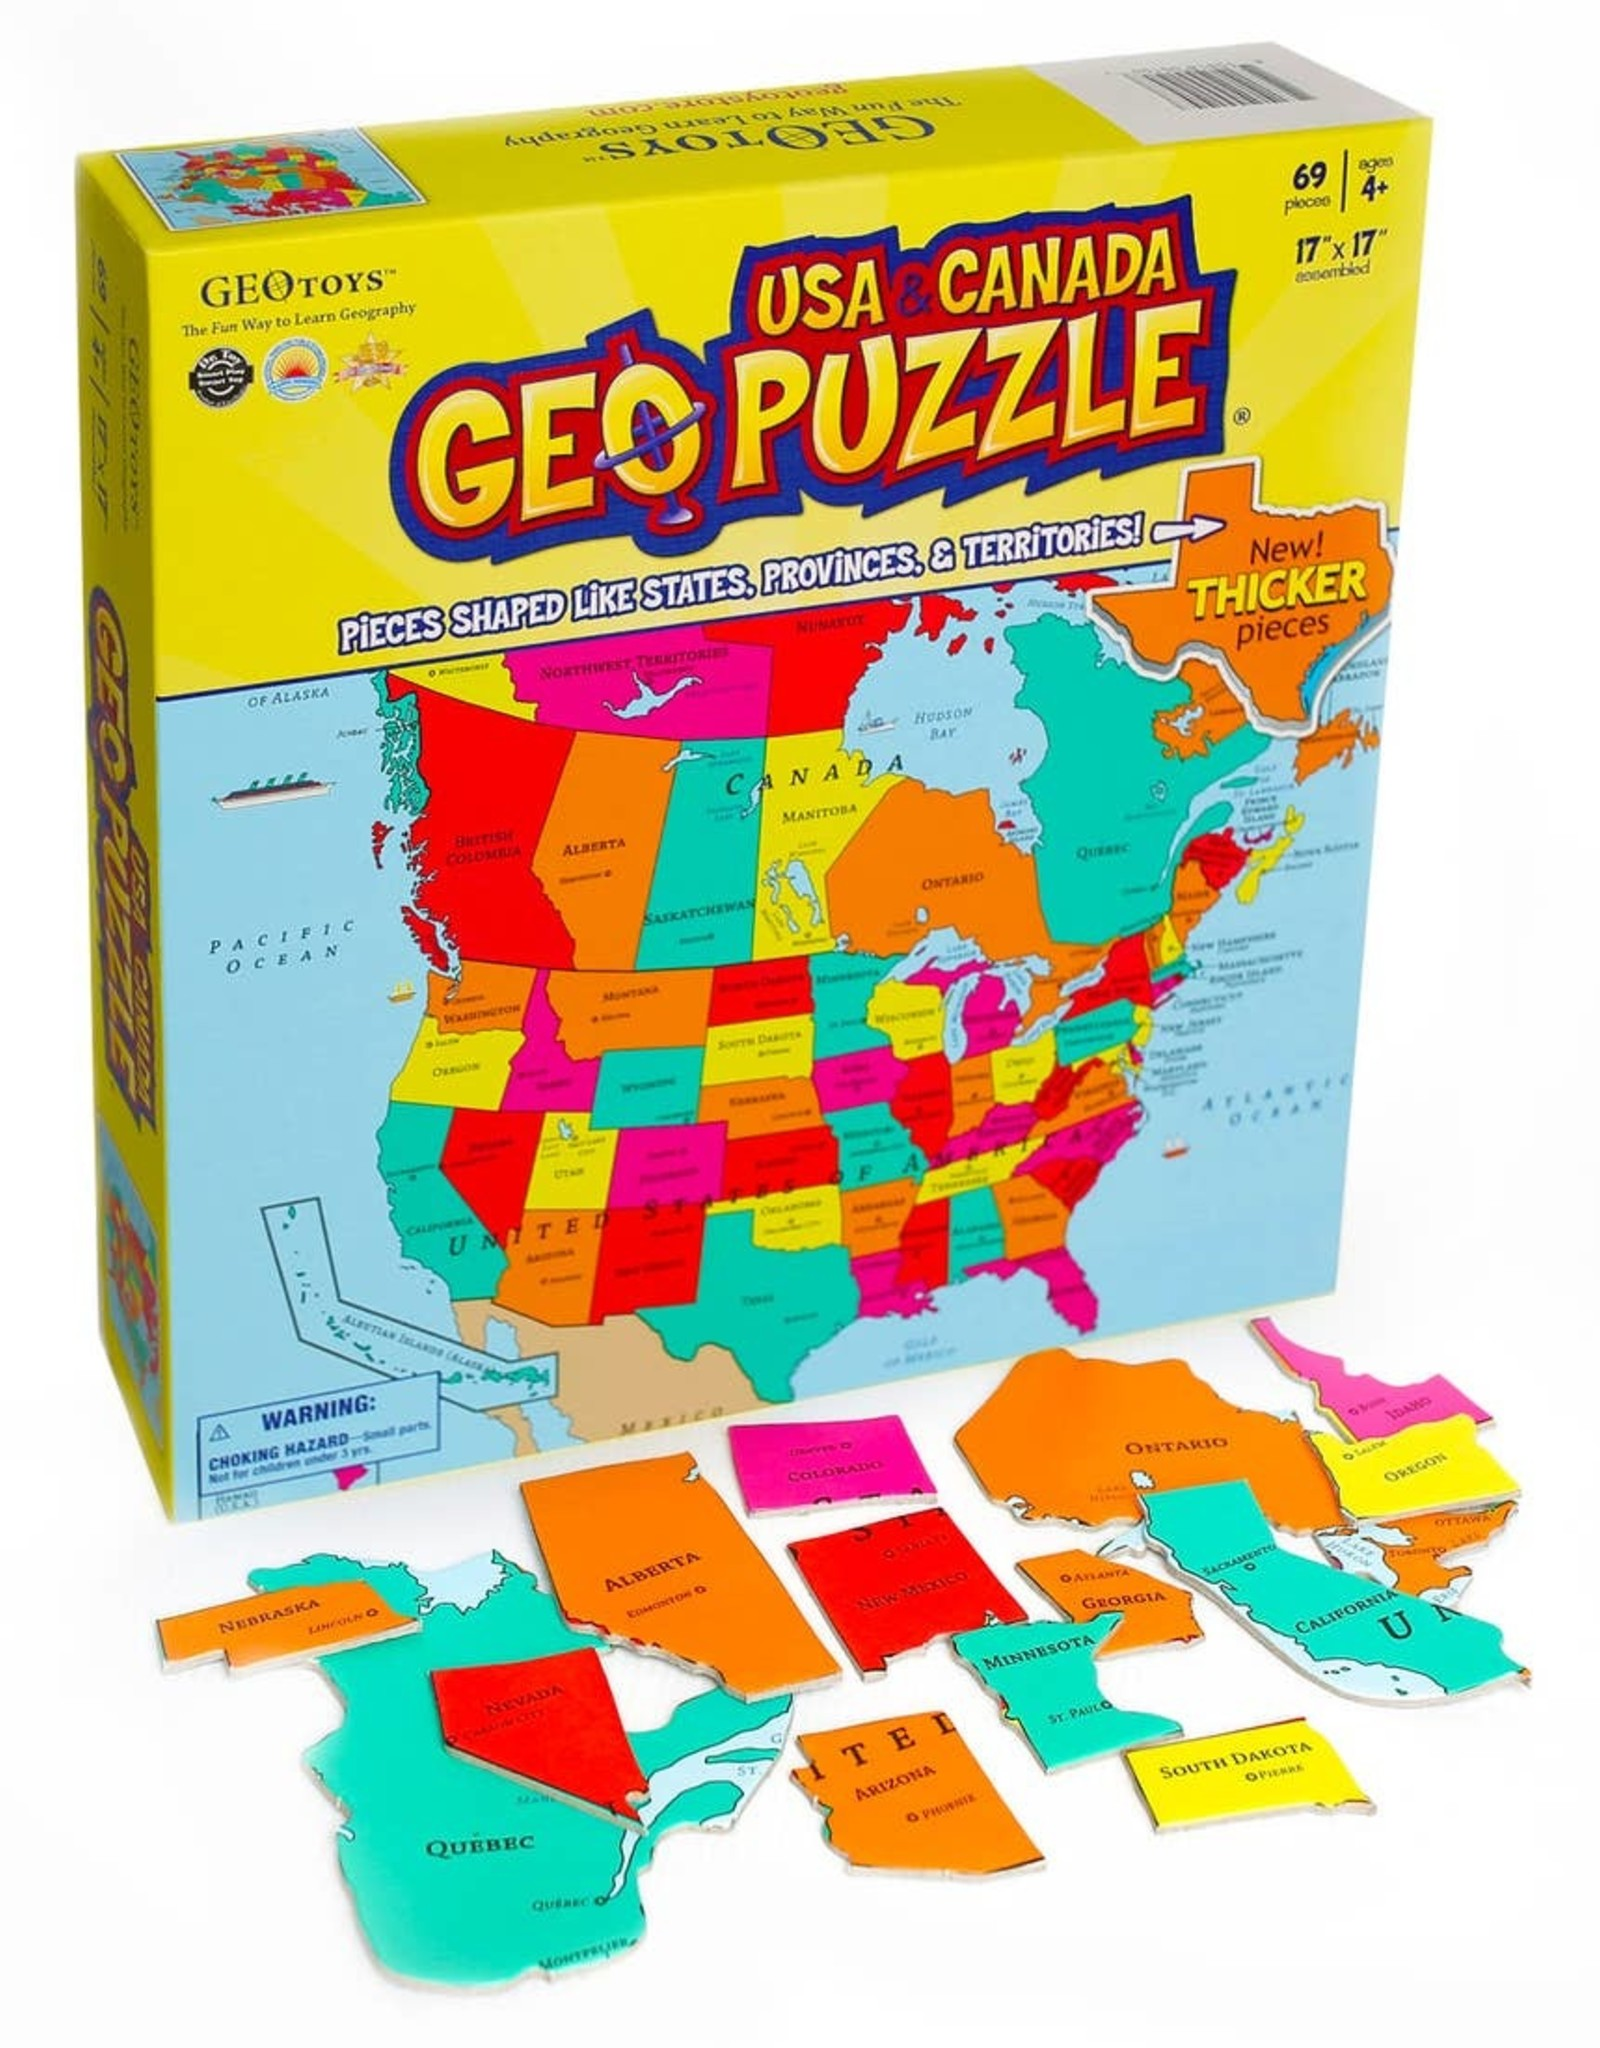 Geotoys Geotoys | GeoPuzzle USA and Canada